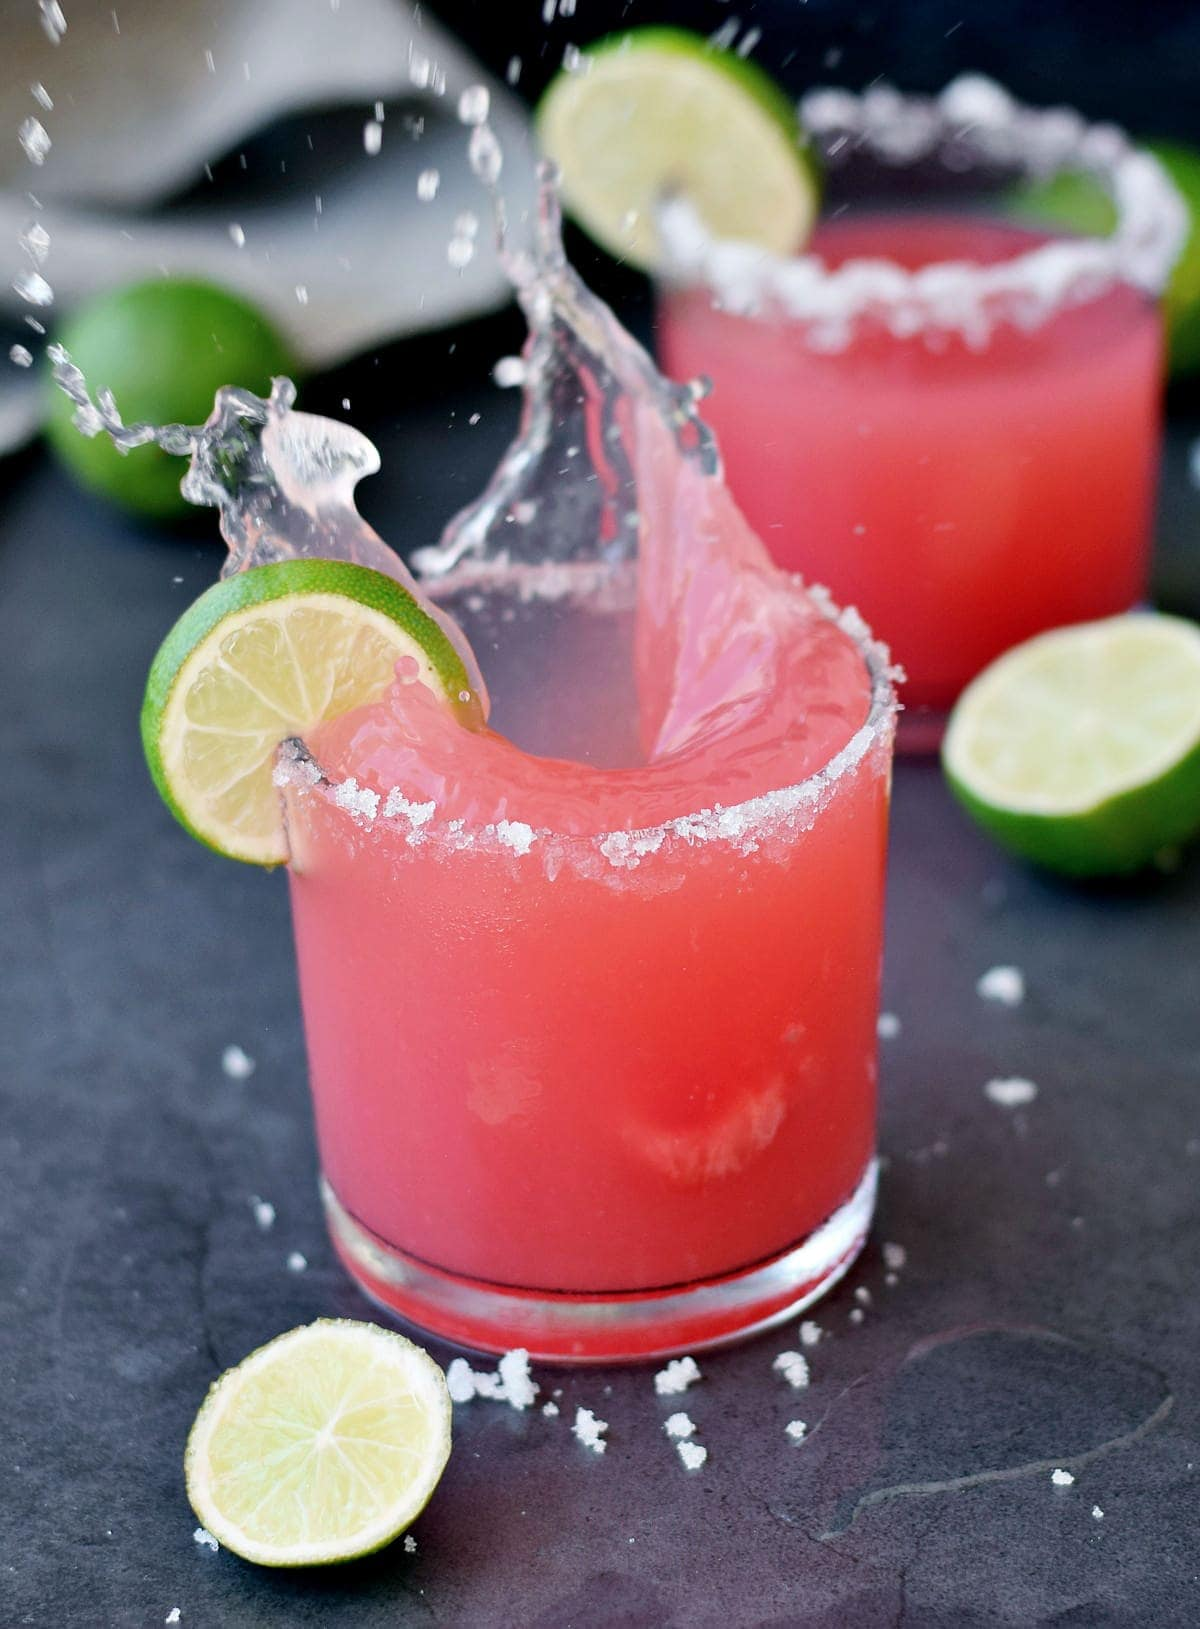 splash shot of watermelon margarita in a glass with lime wedges